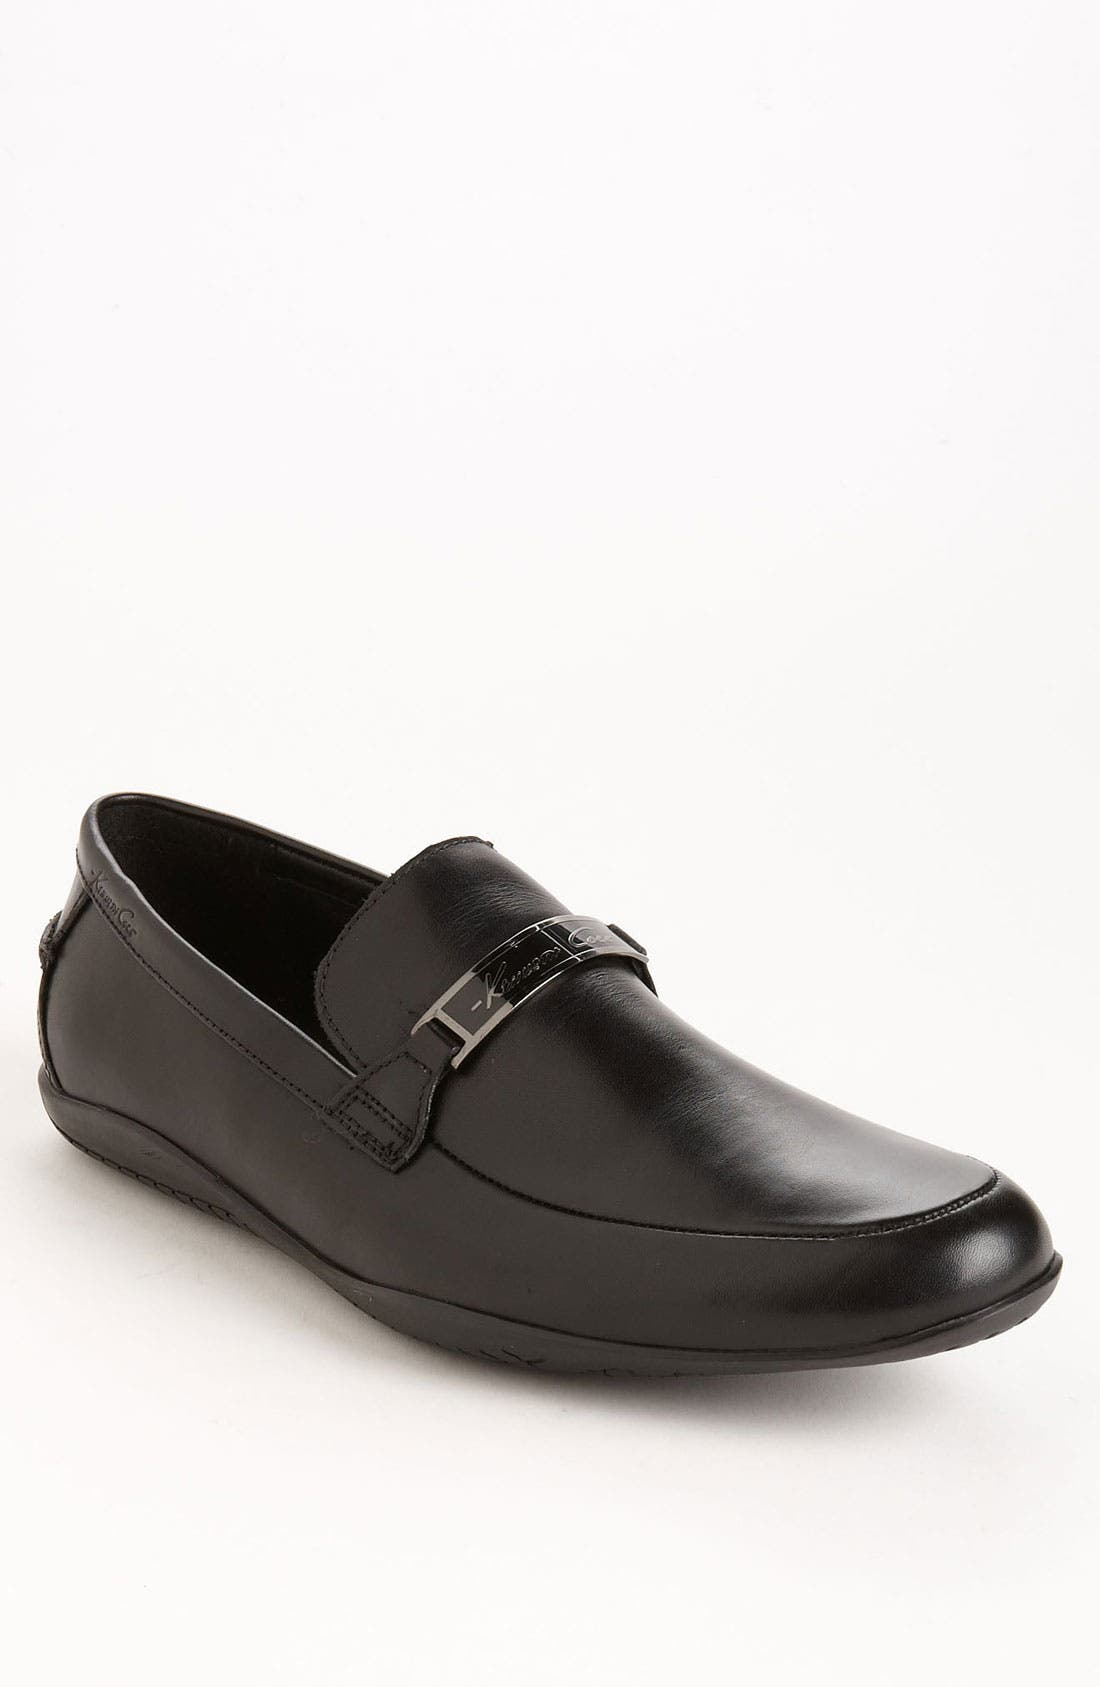 Main Image - Kenneth Cole New York 'Home Grown' Loafer